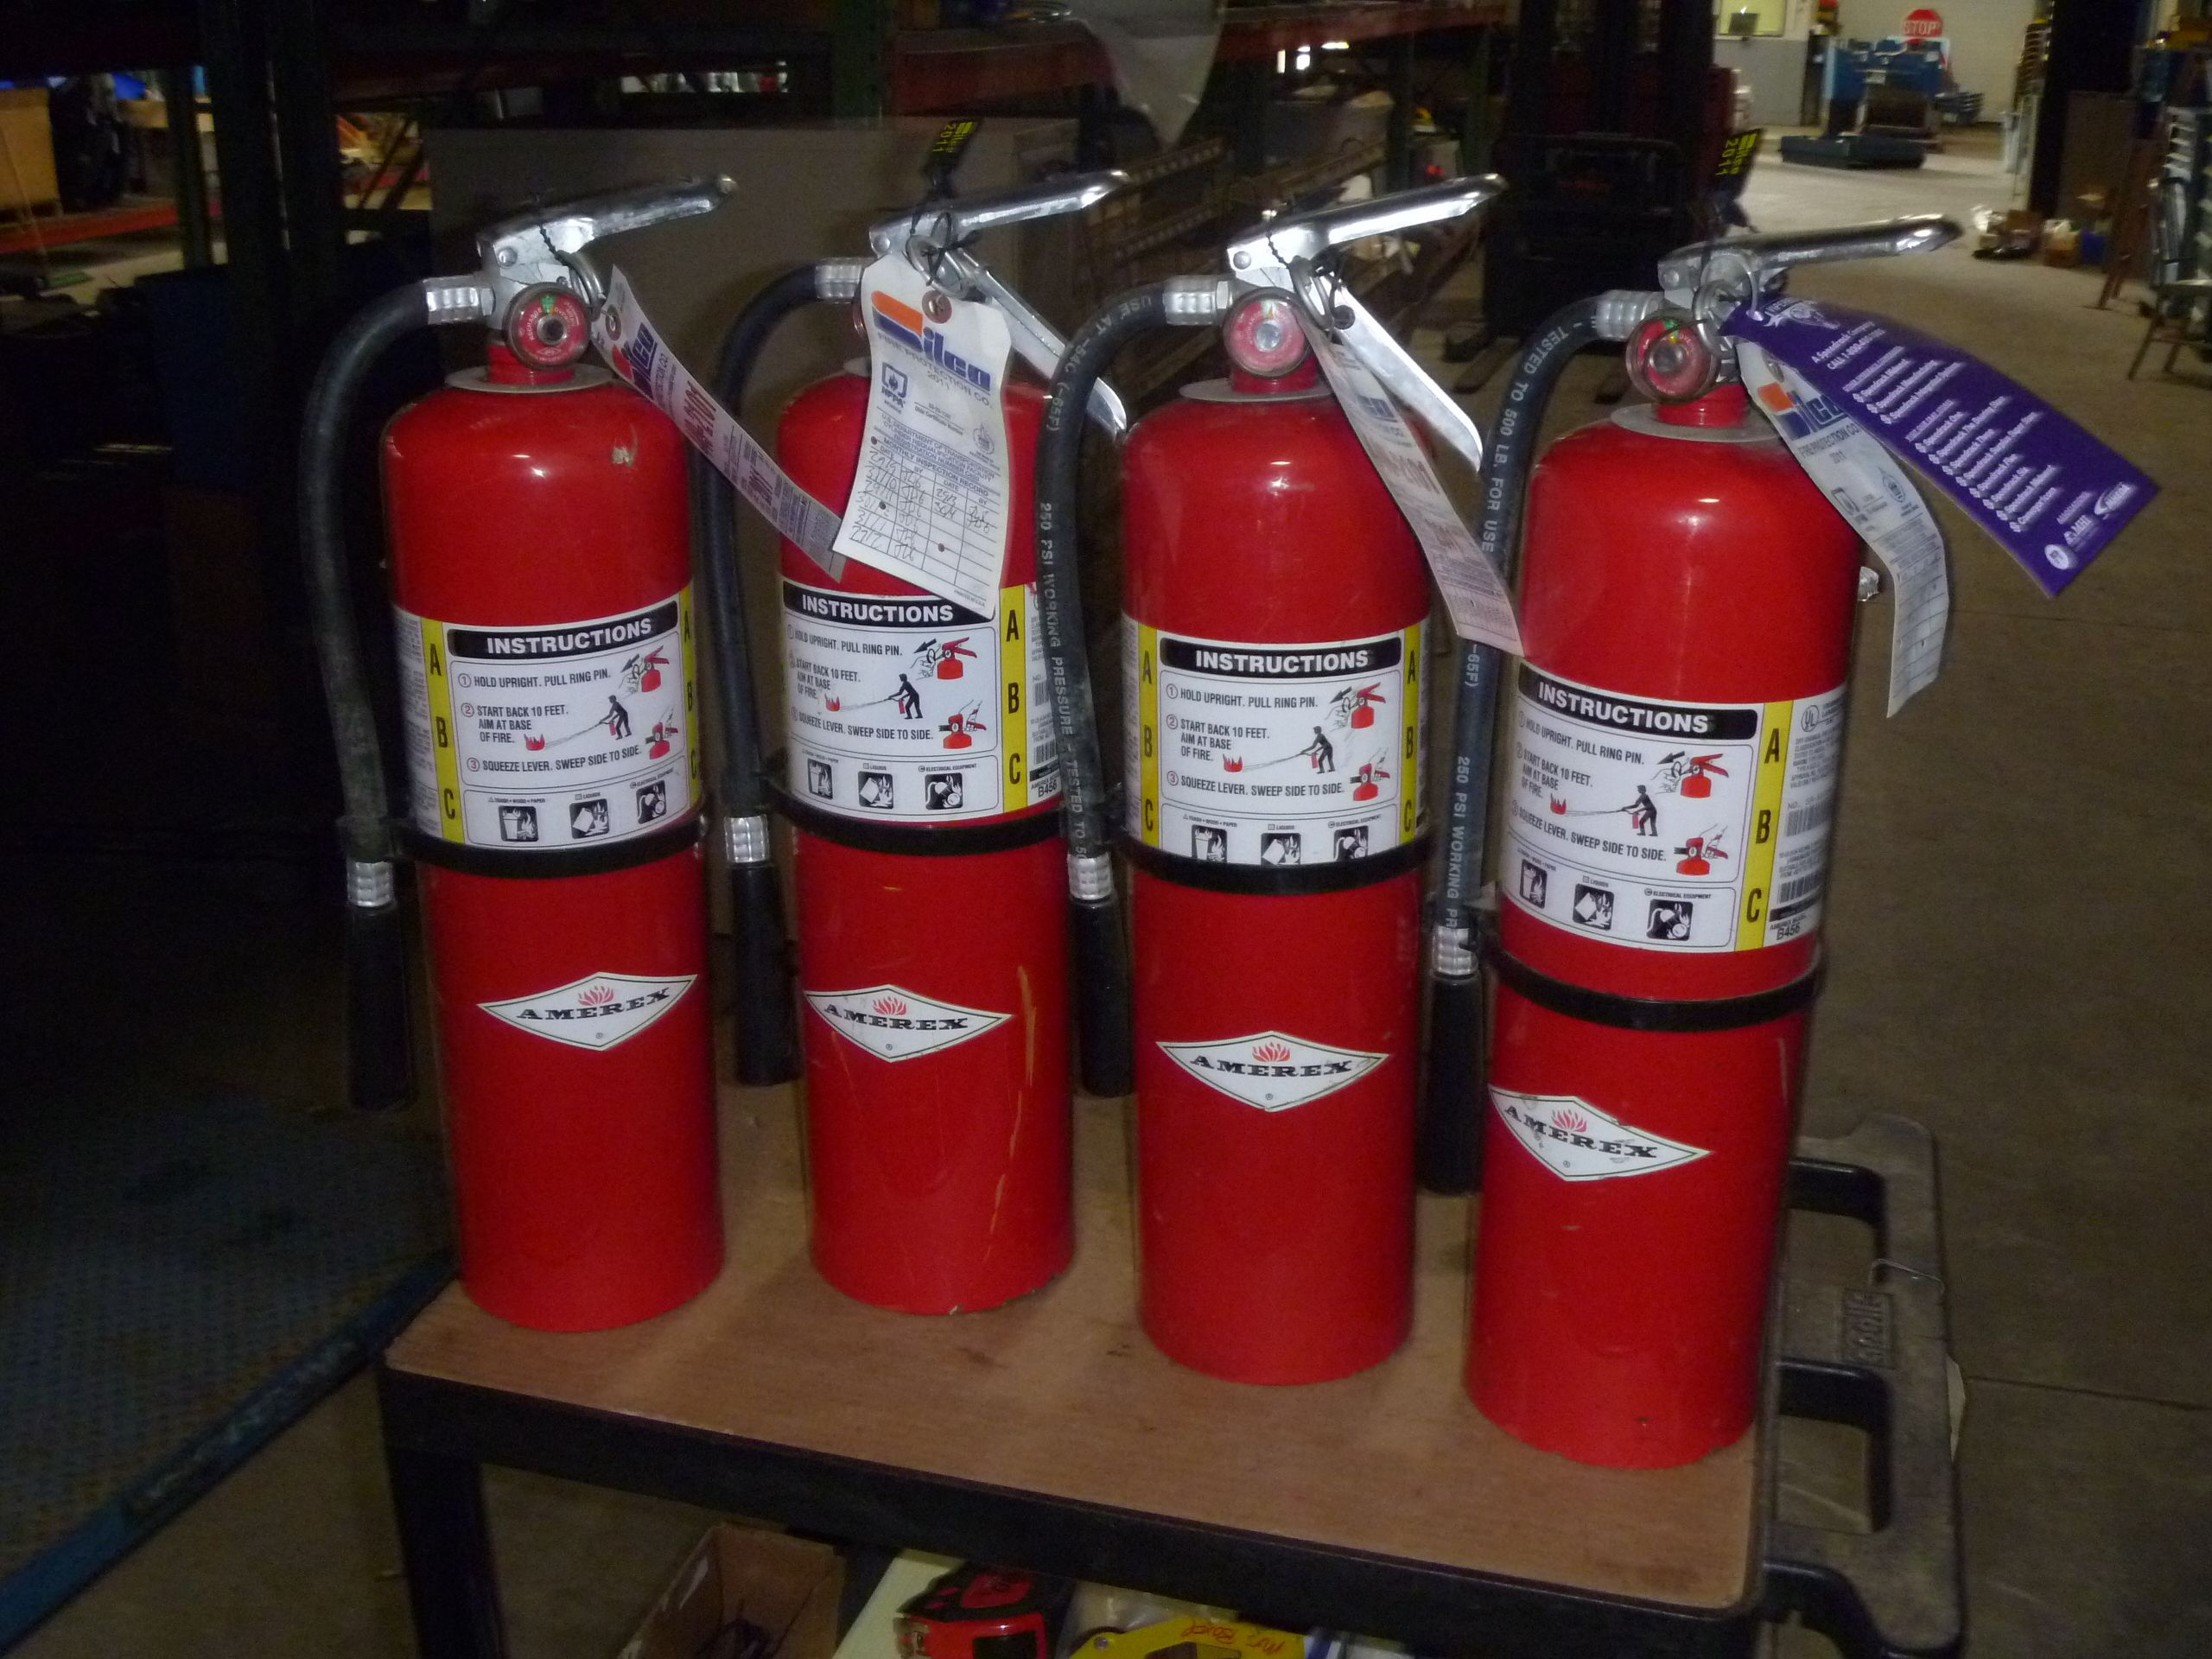 10lb Amerex Abc Fire Extinguishers Model B456 Up For Auction Online Through Viperbid Michigan Fire Extinguishers Extinguisher Fire Extinguisher